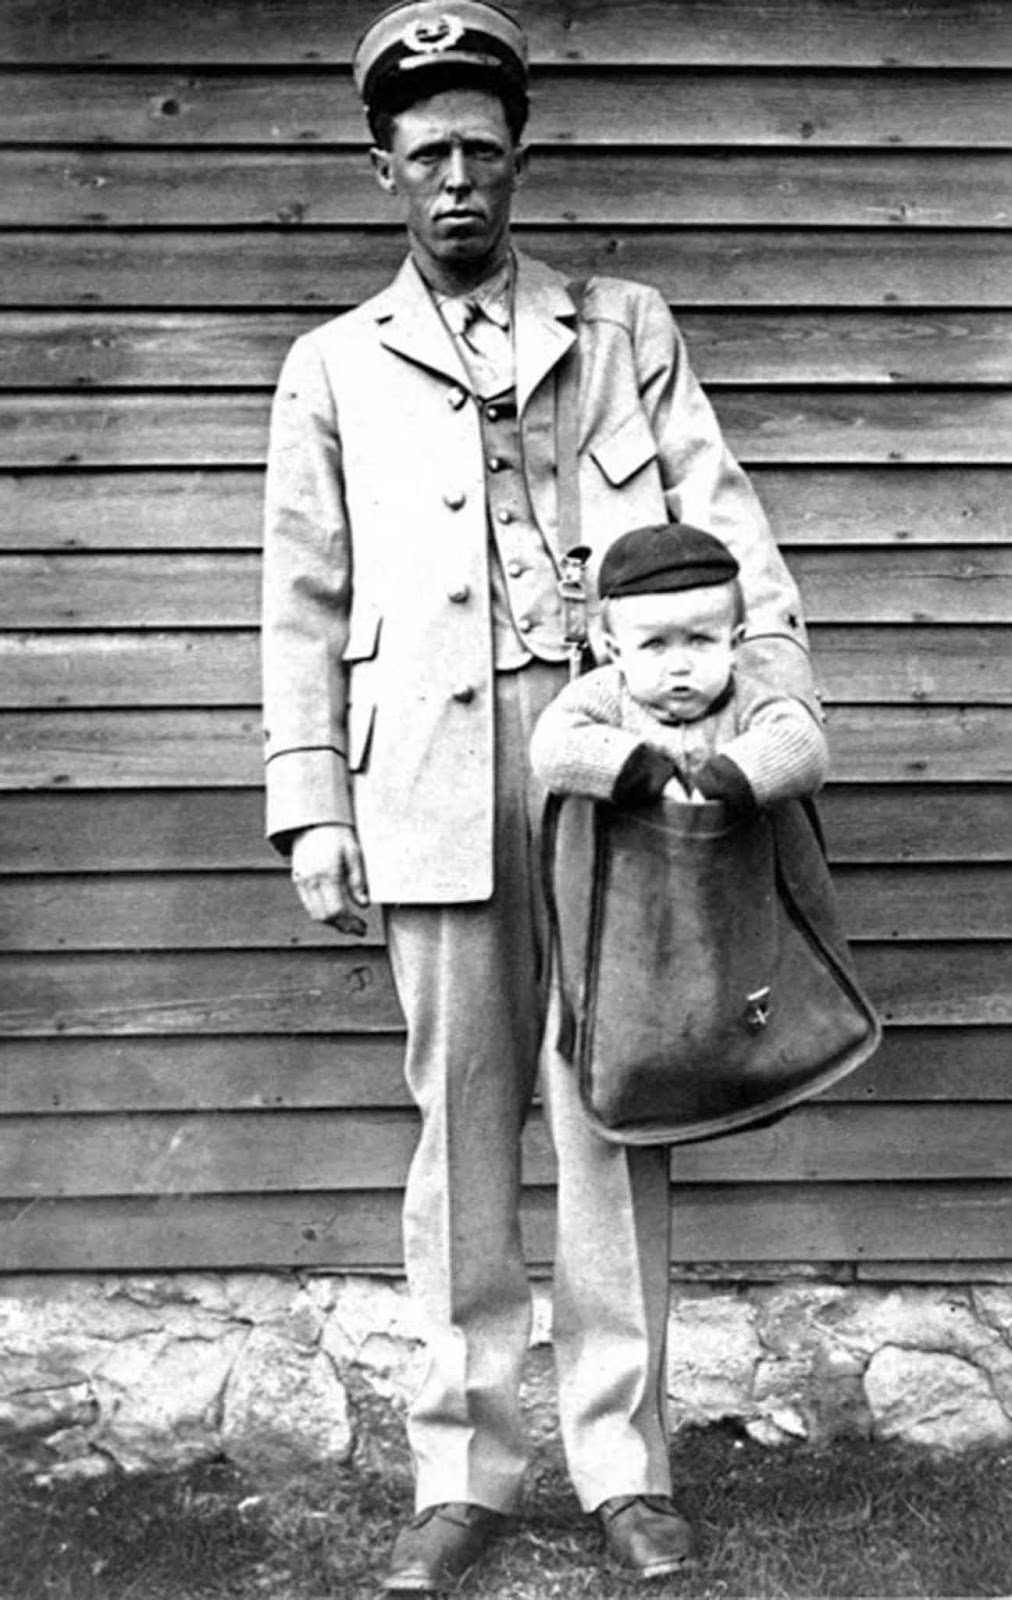 A mailman with a baby (most likely a stage photograph).